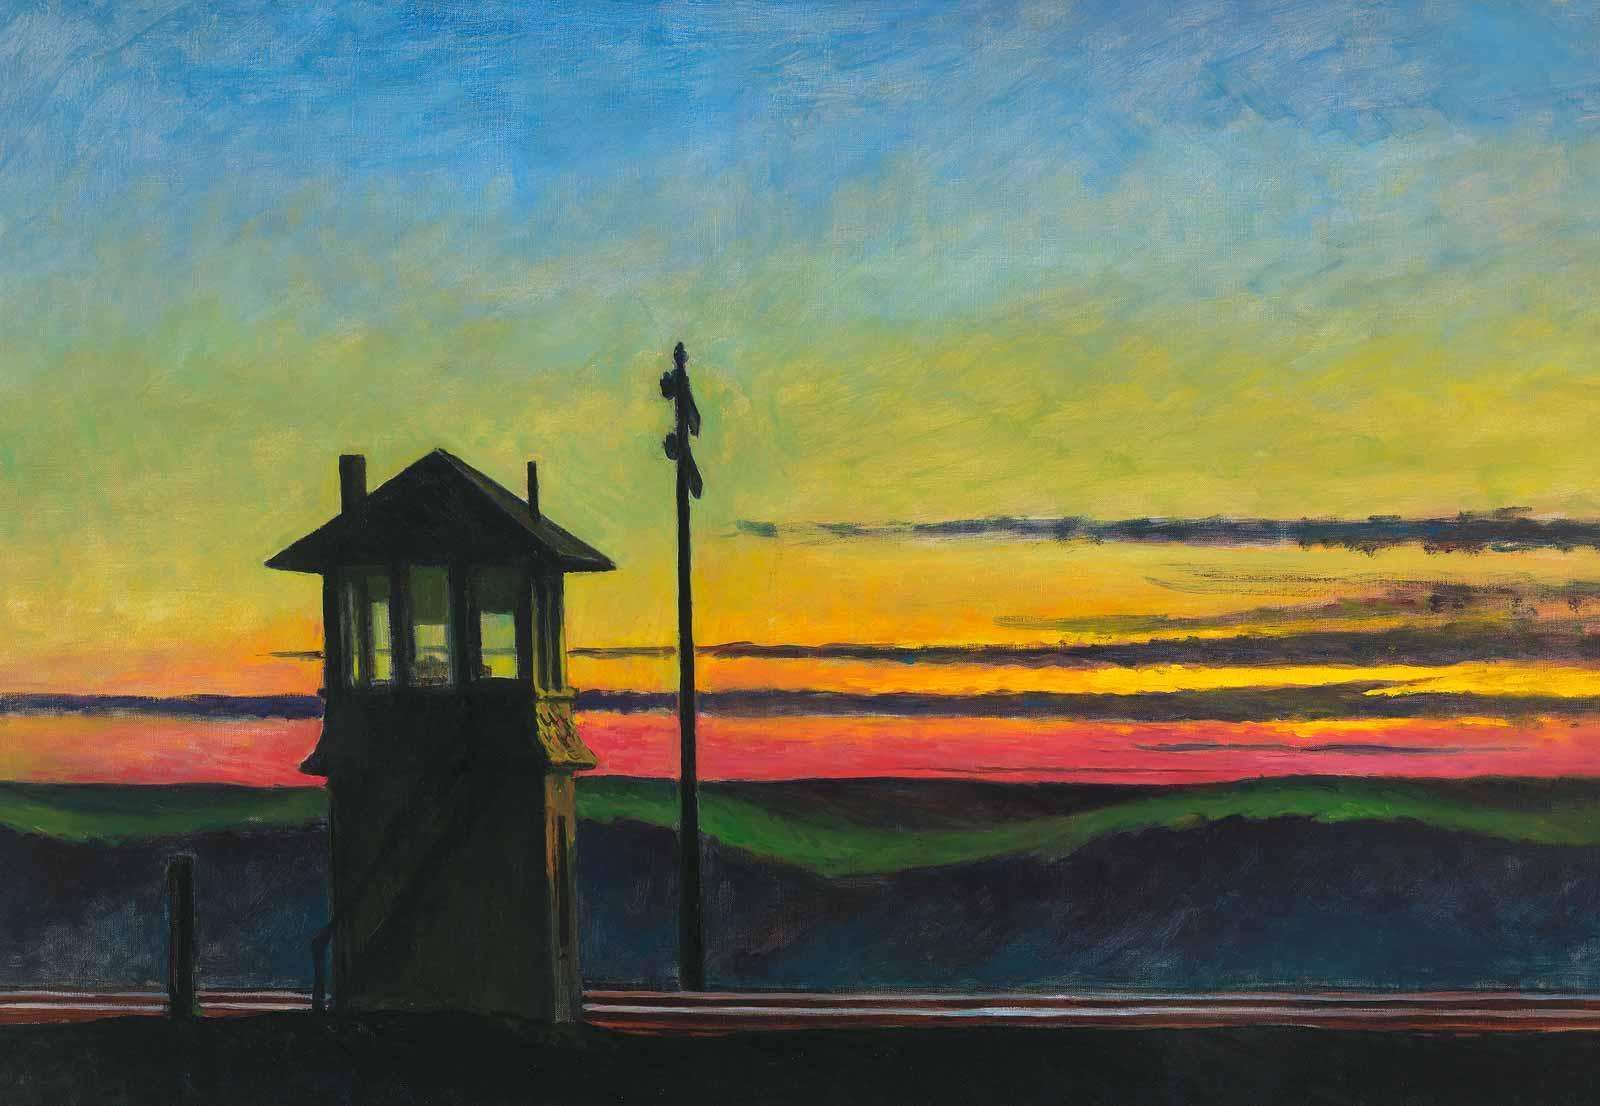 Edward Hopper, Railroad Sunset, 1929.